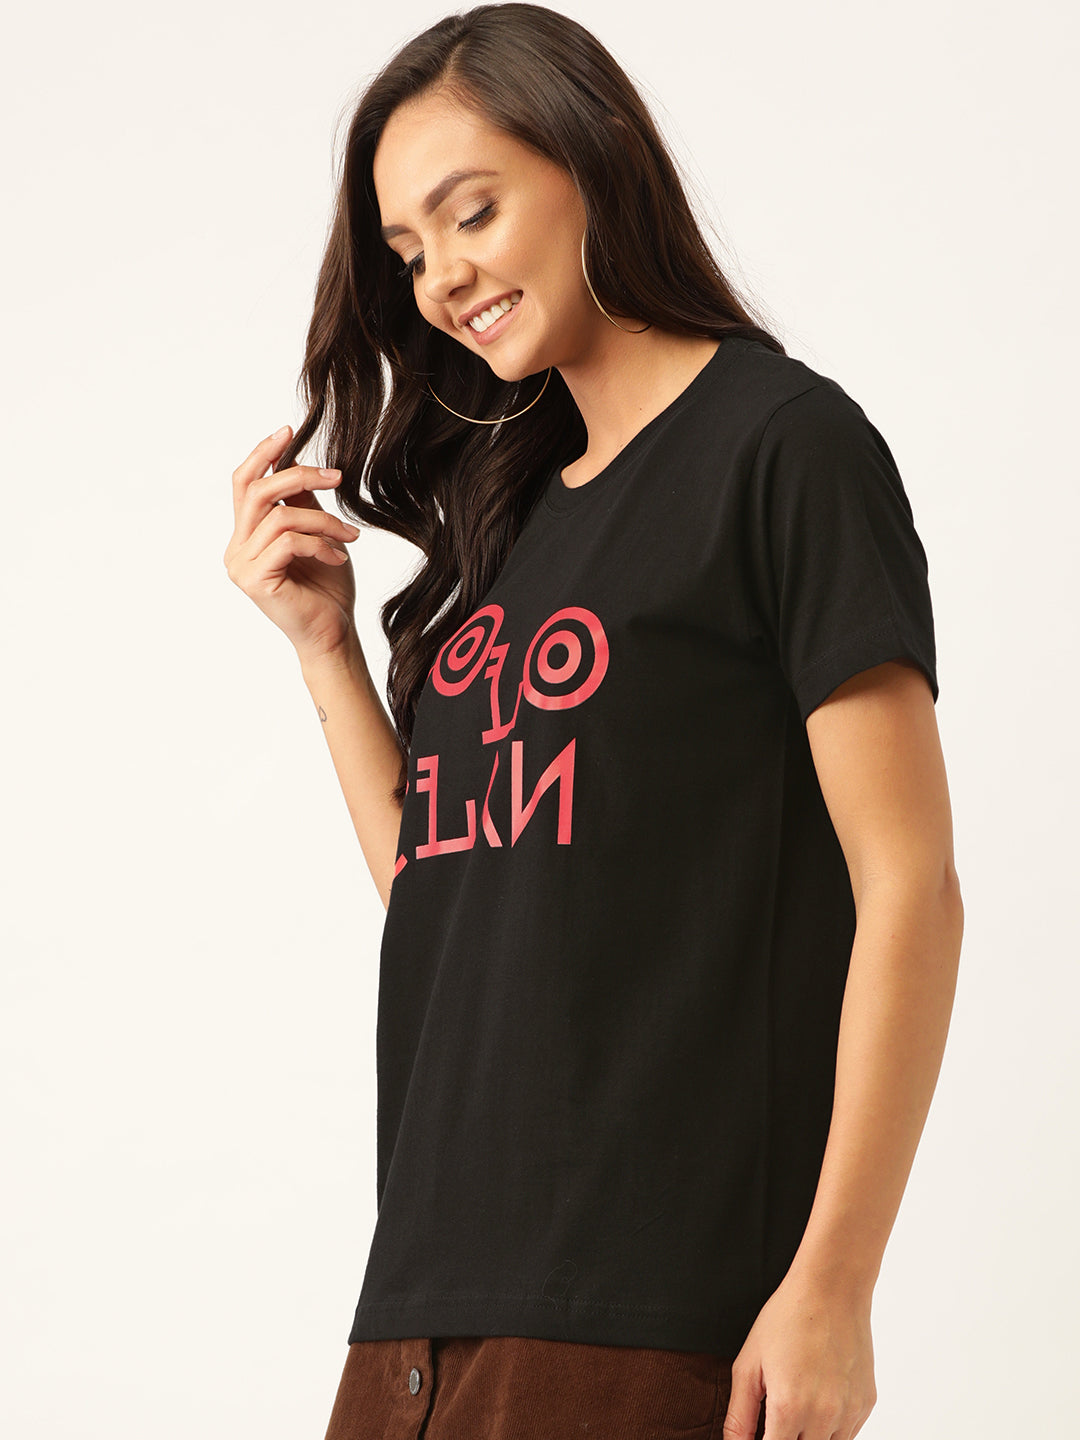 YOLOCLAN Signature Women Black T-Shirt - YOLOCLAN